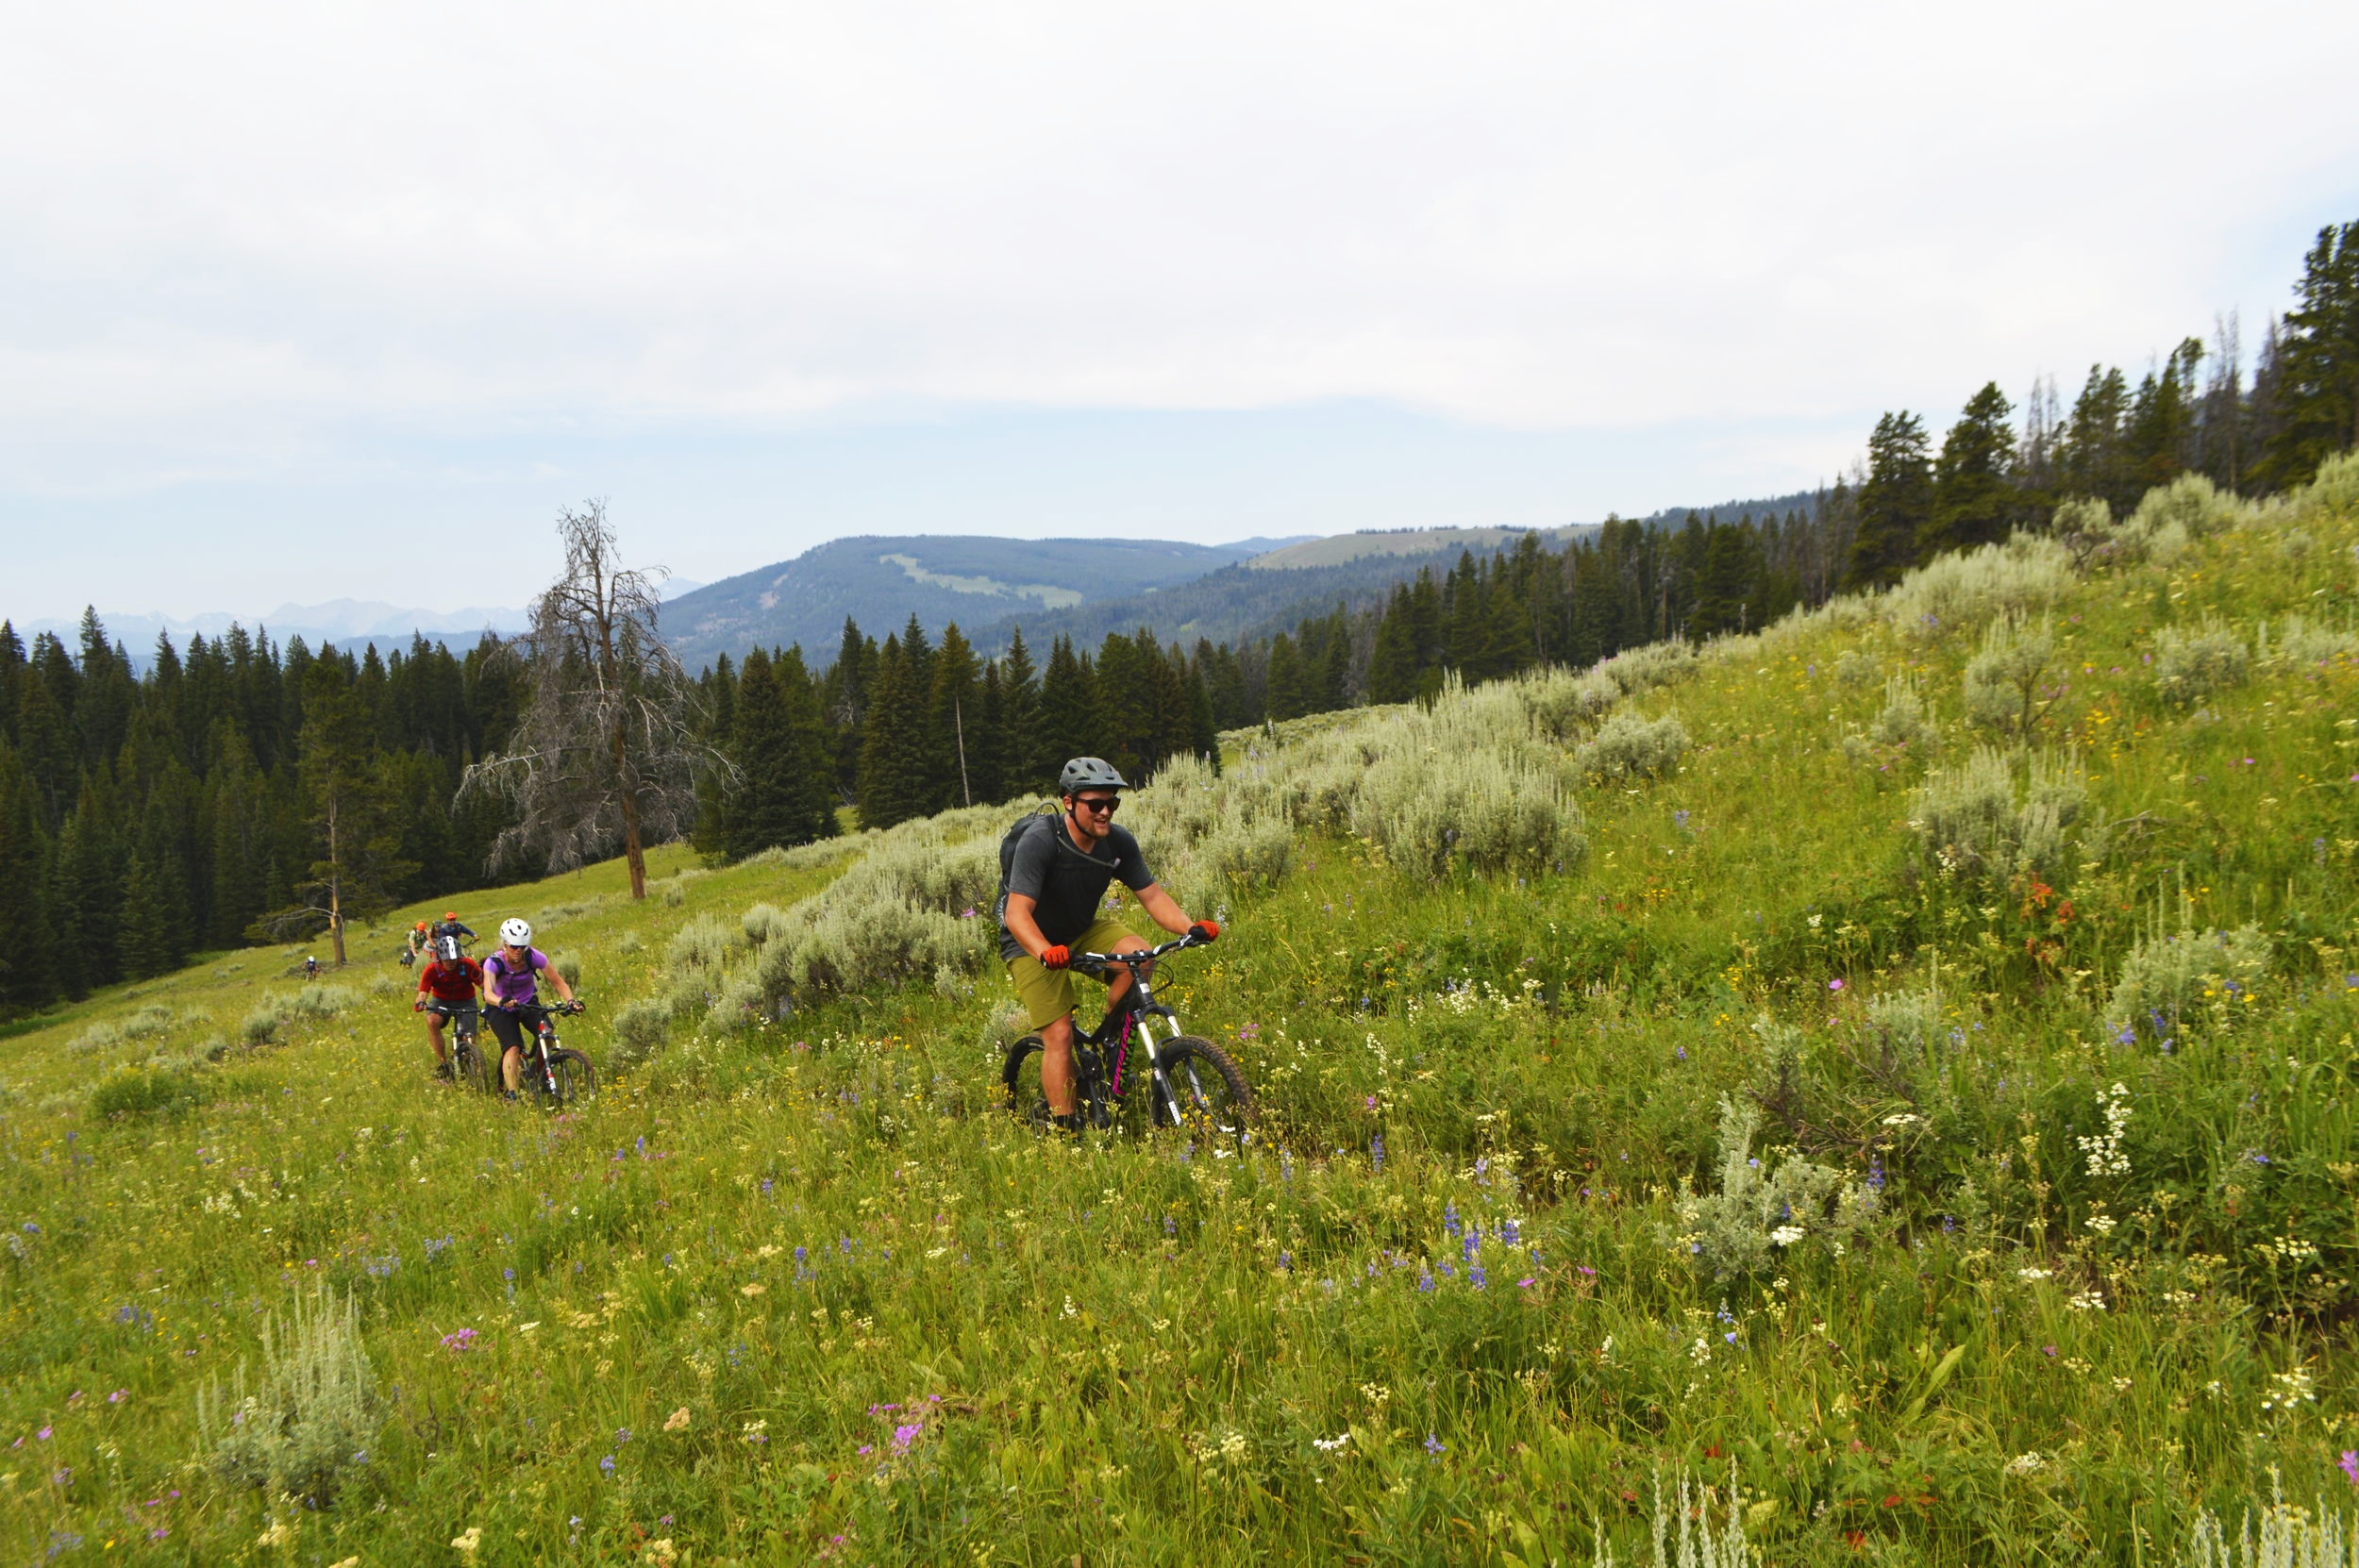 Group rides: one benefit of membership.